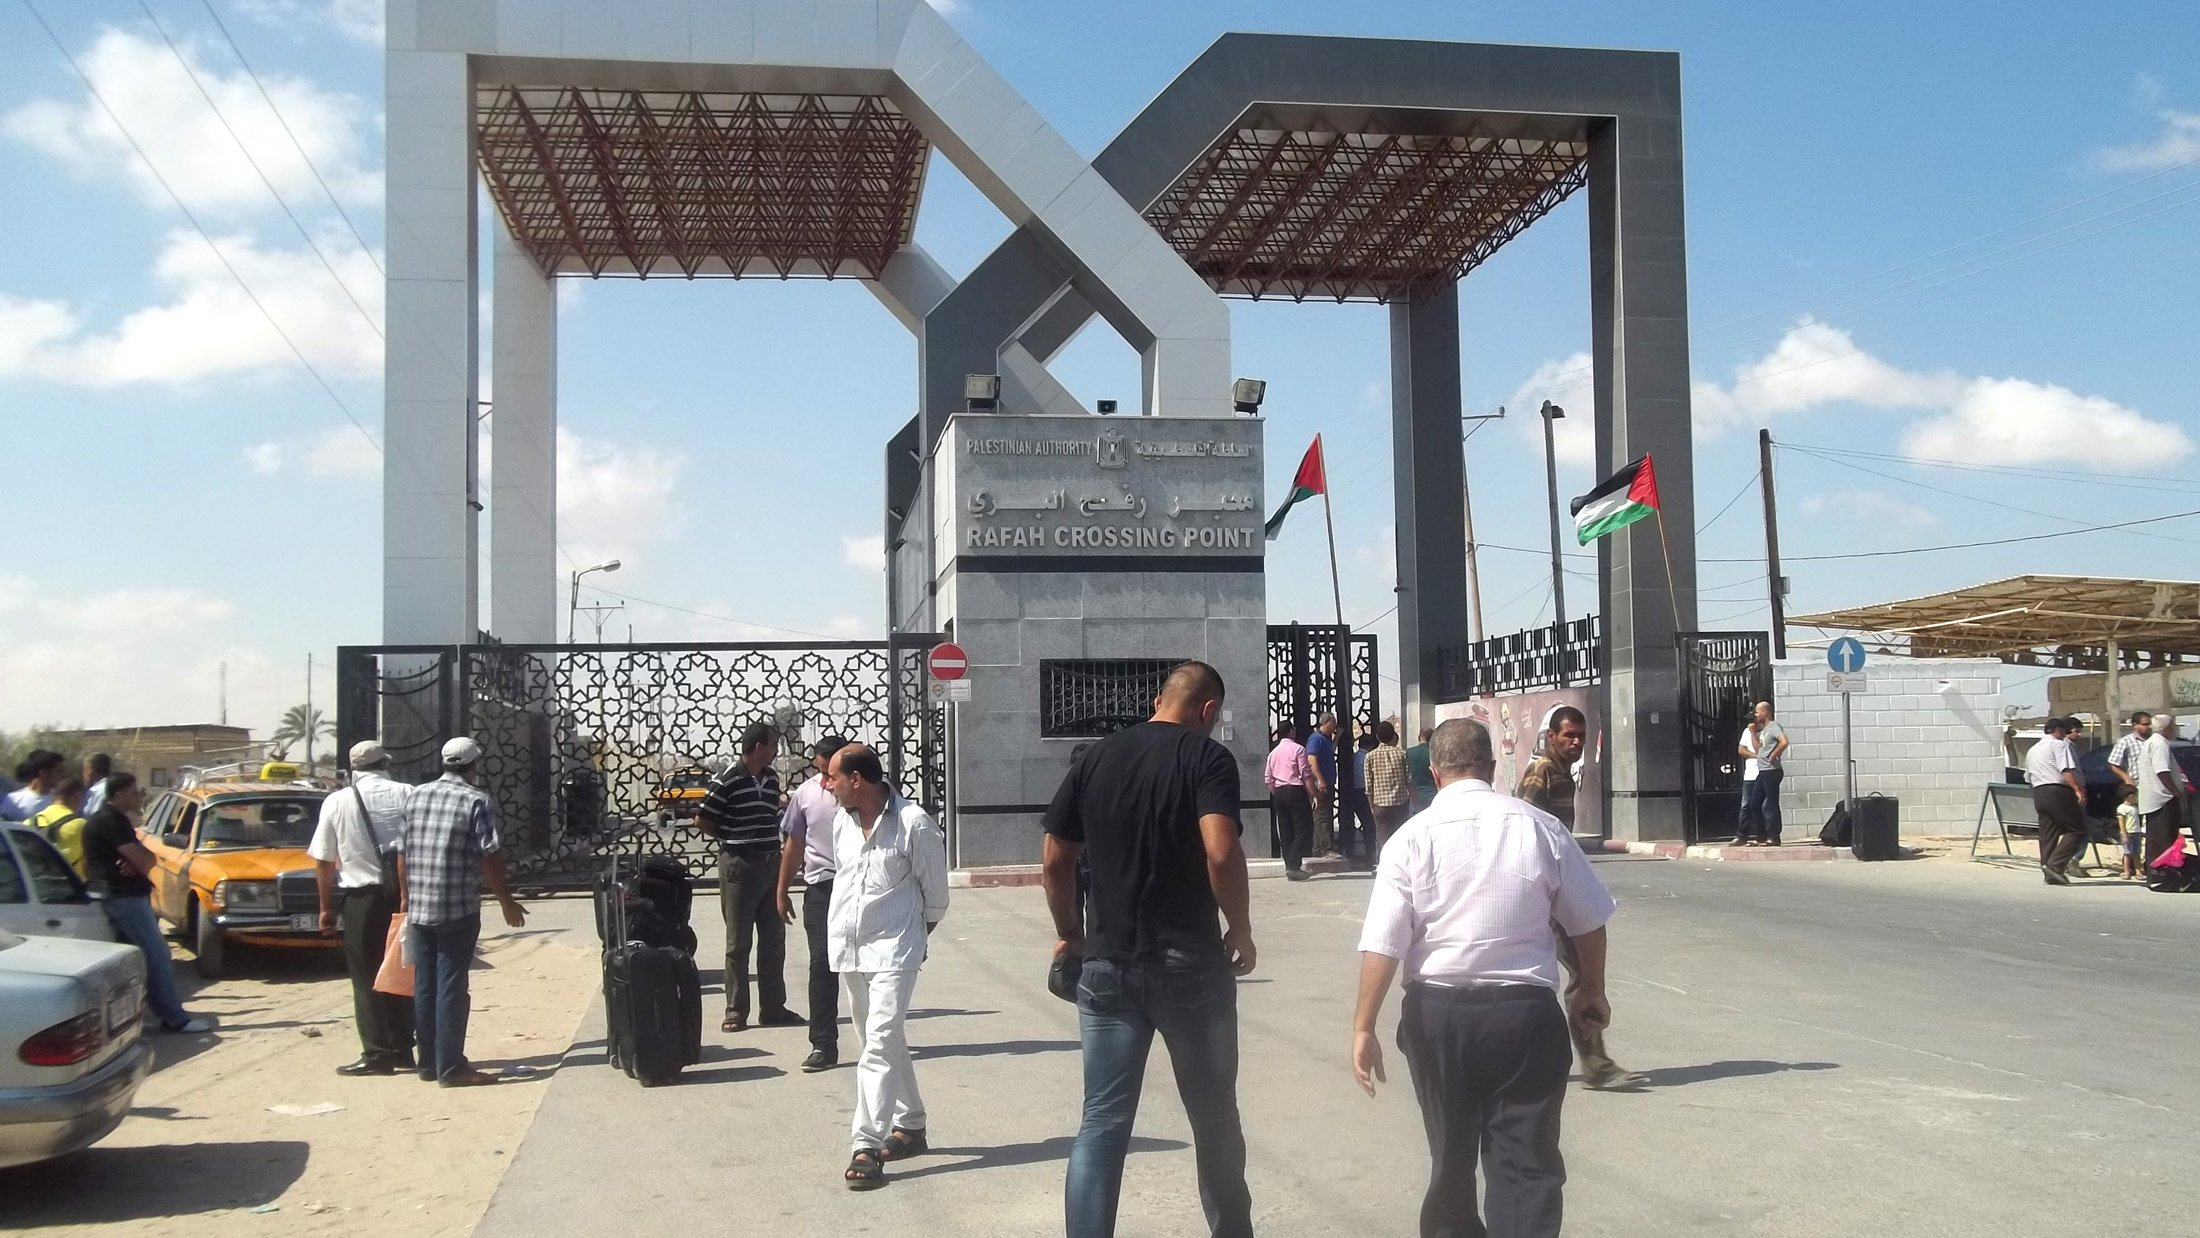 Rafah Crossing is main passengers terminal was affected by recent Egyptian army operations in Sinai